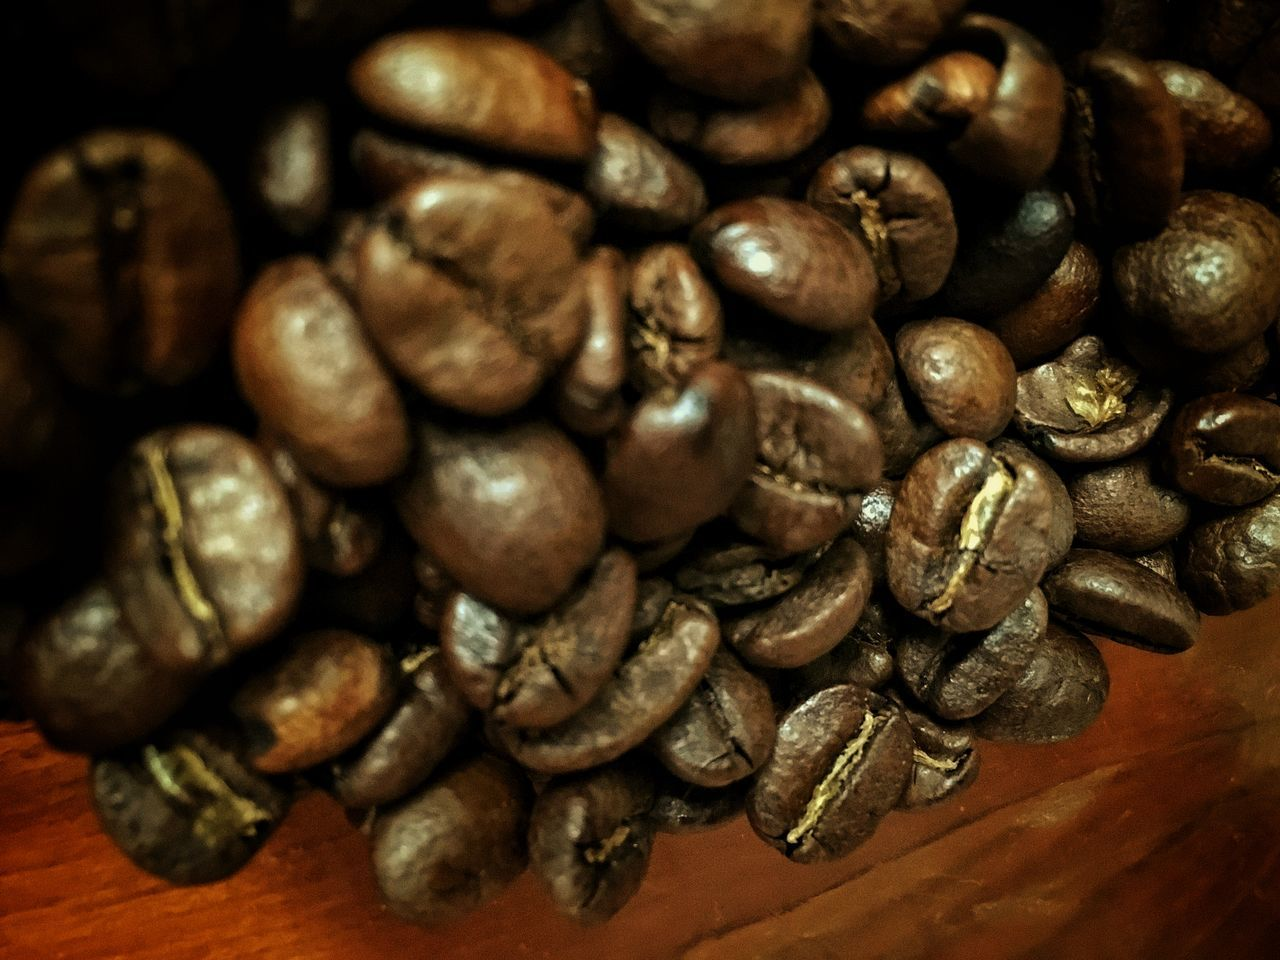 food and drink, coffee bean, still life, close-up, large group of objects, raw coffee bean, indoors, no people, brown, roasted, abundance, food, group of objects, backgrounds, freshness, healthy eating, day